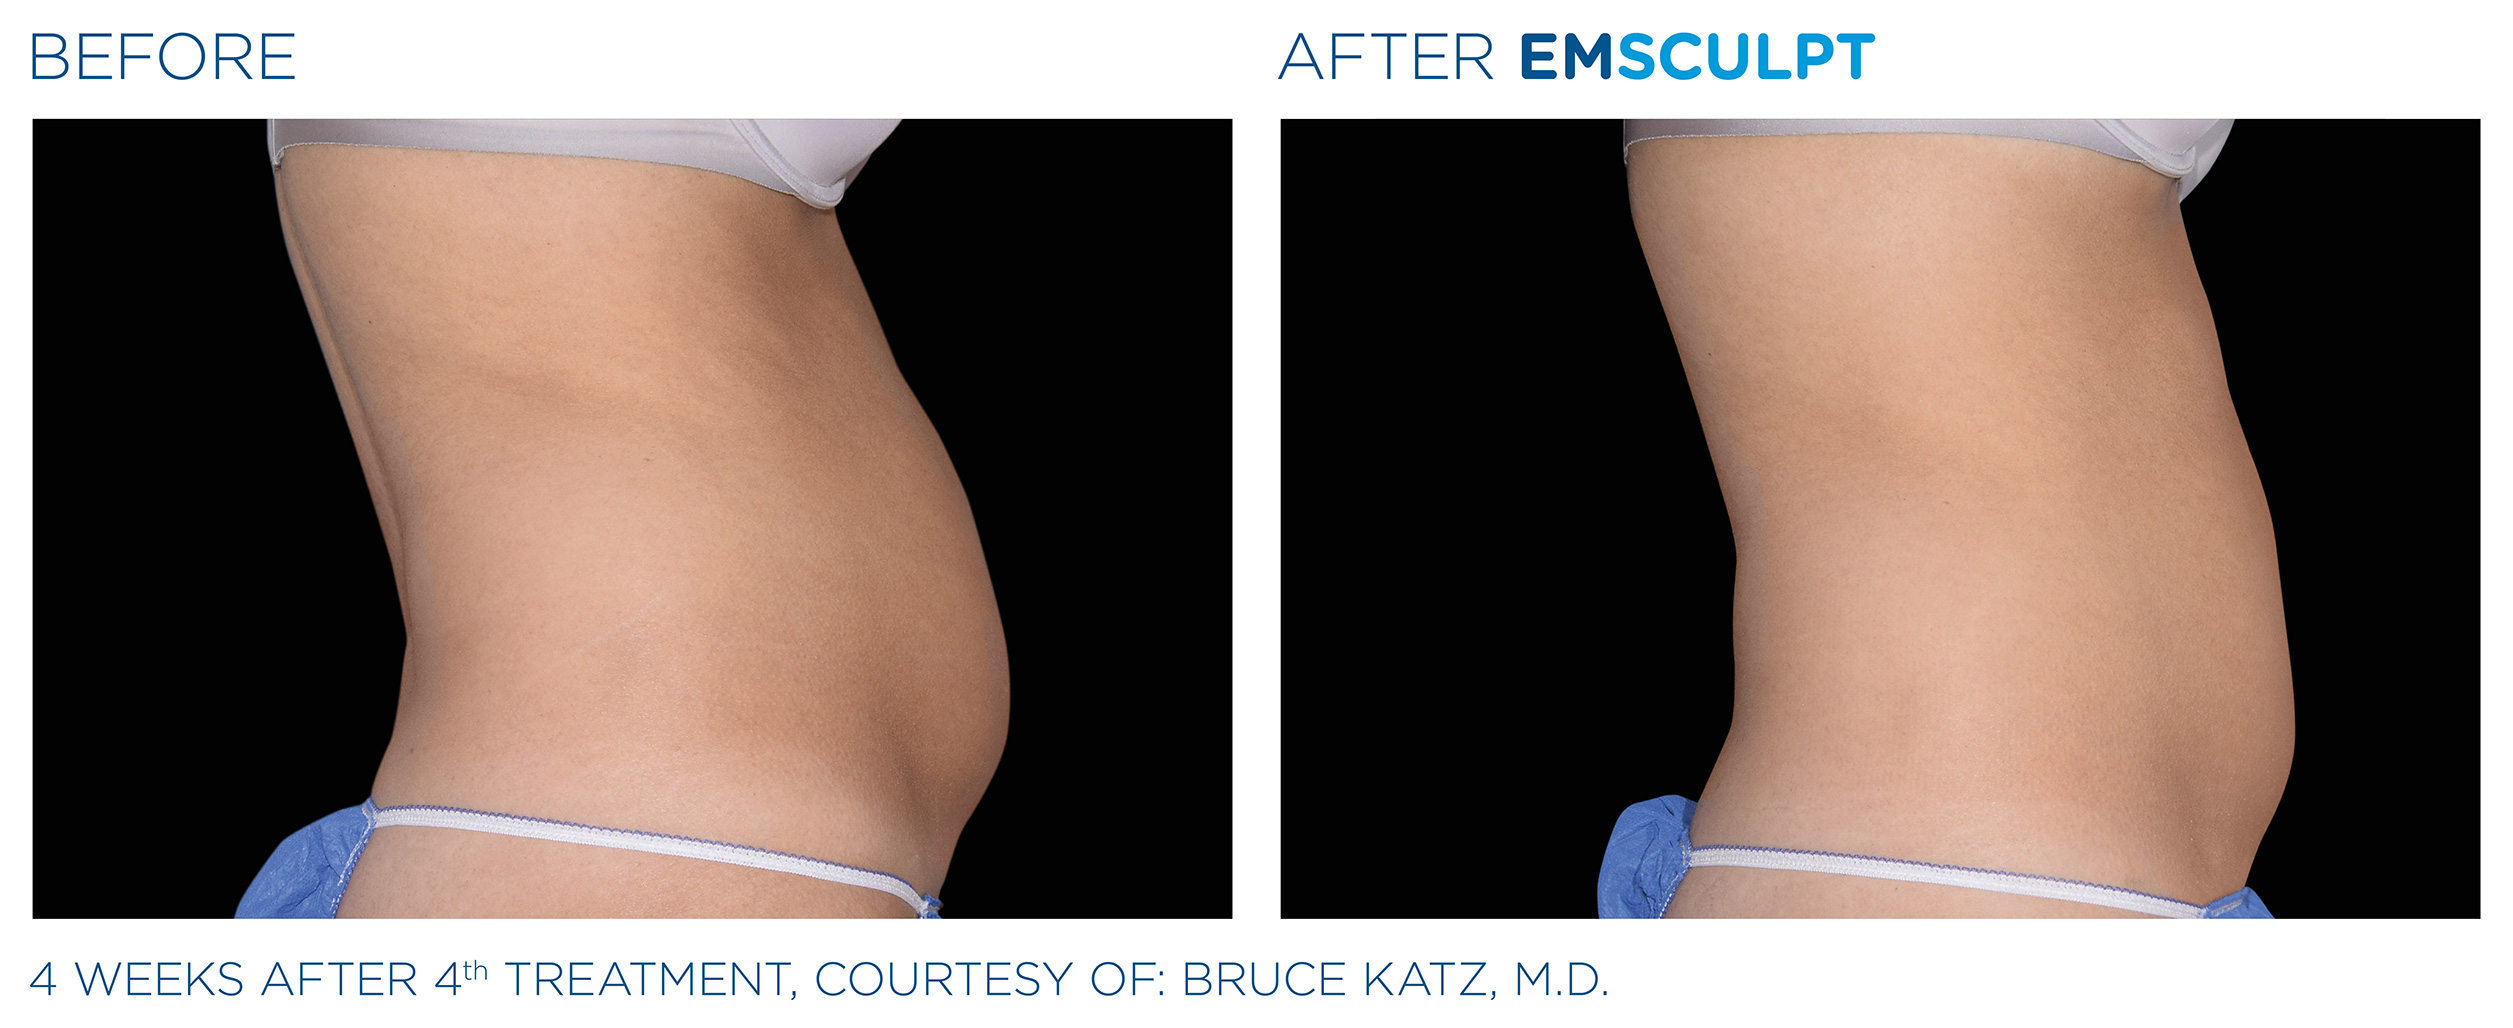 EMSCULPT Before & After Photos | Abdomen 2